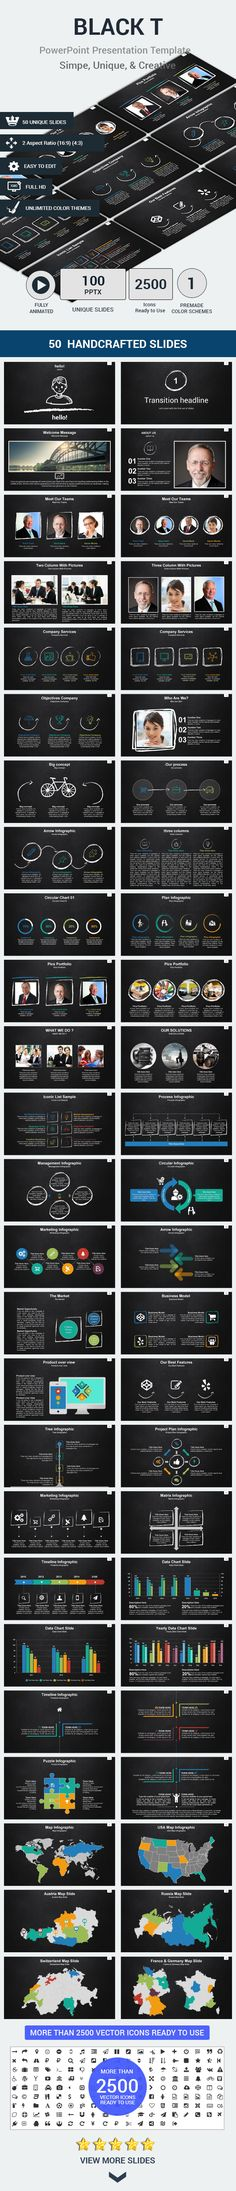 Black PowerPoint Presentation Template #slides #design Download: http://graphicriver.net/item/black-t-presentation-template/13038673?ref=ksioks